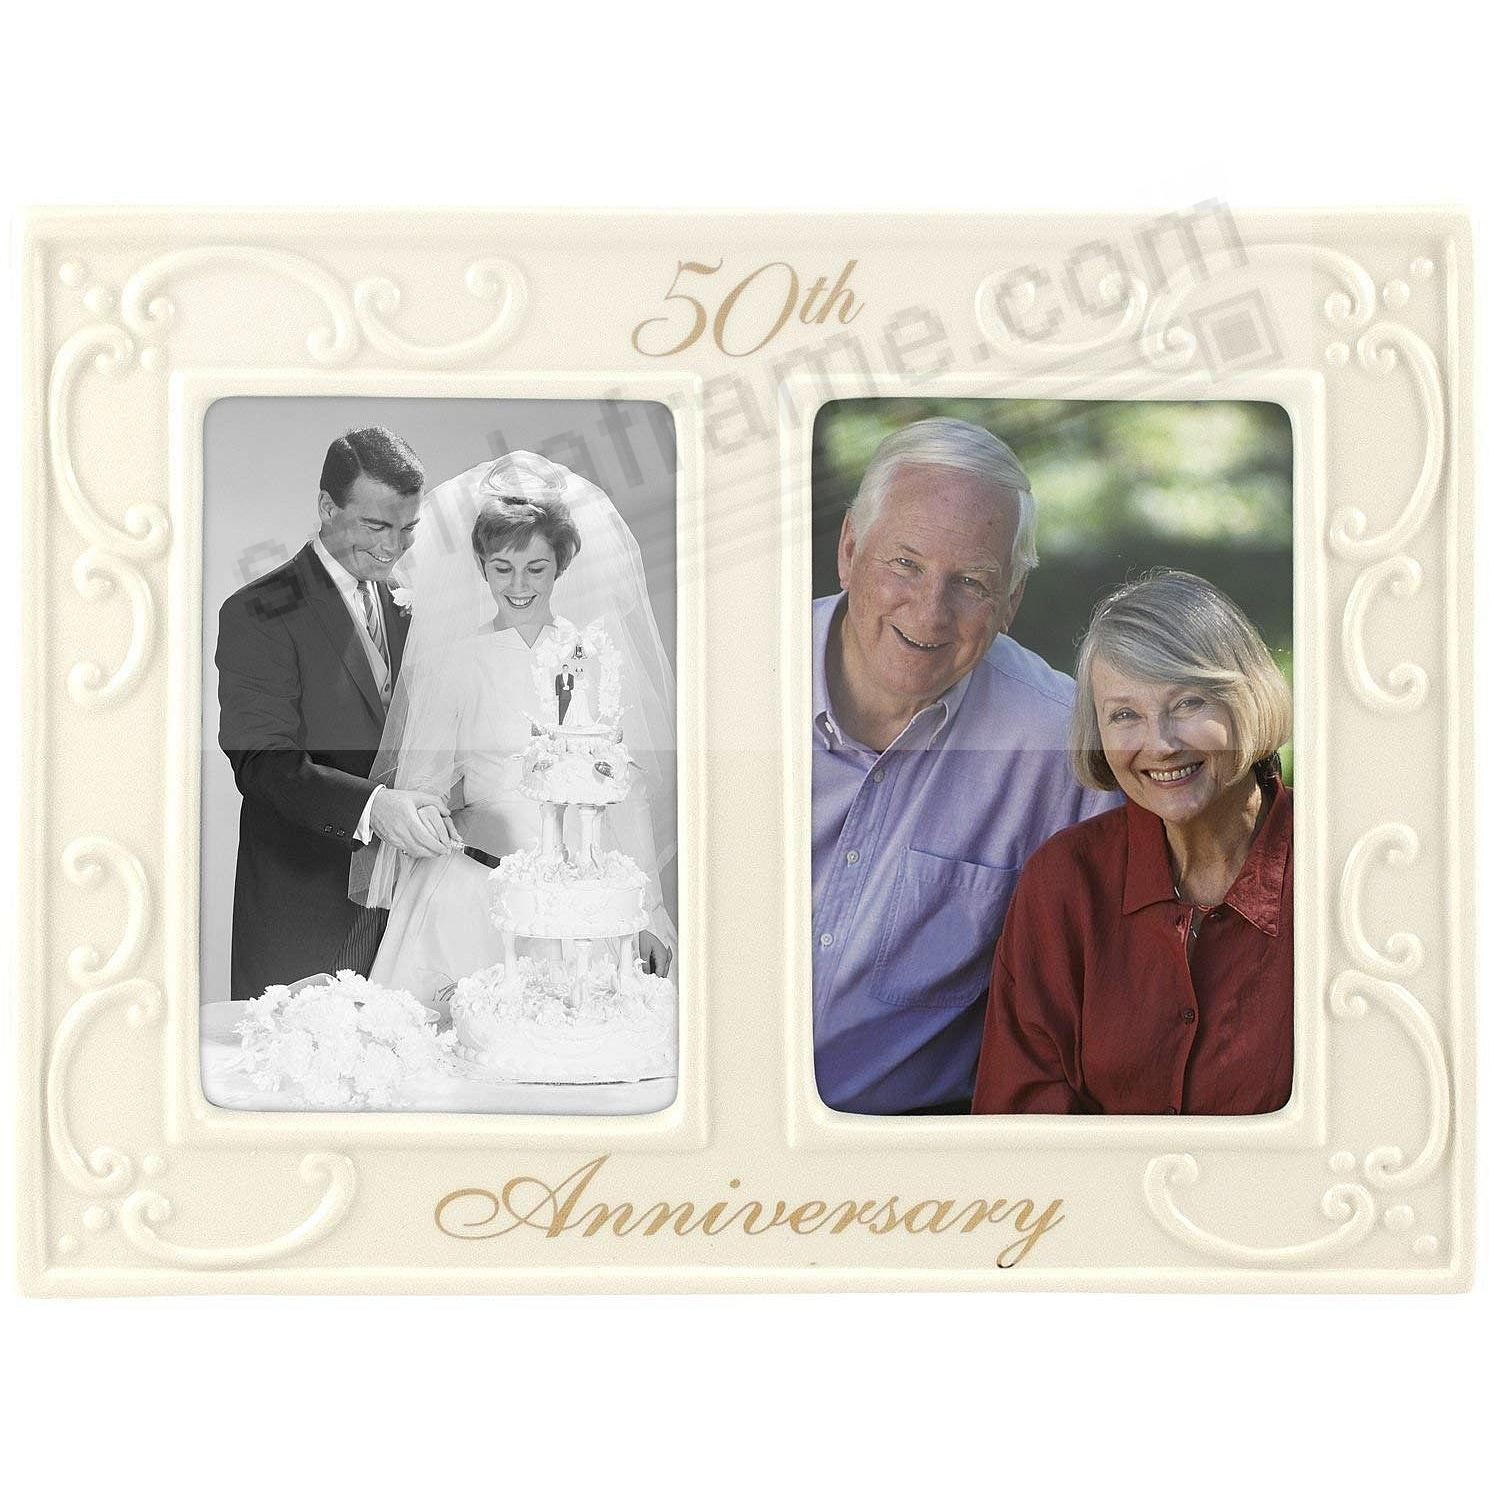 Special 50TH ANNIVERSARY -Then and Now- Double Ceramic keepsake